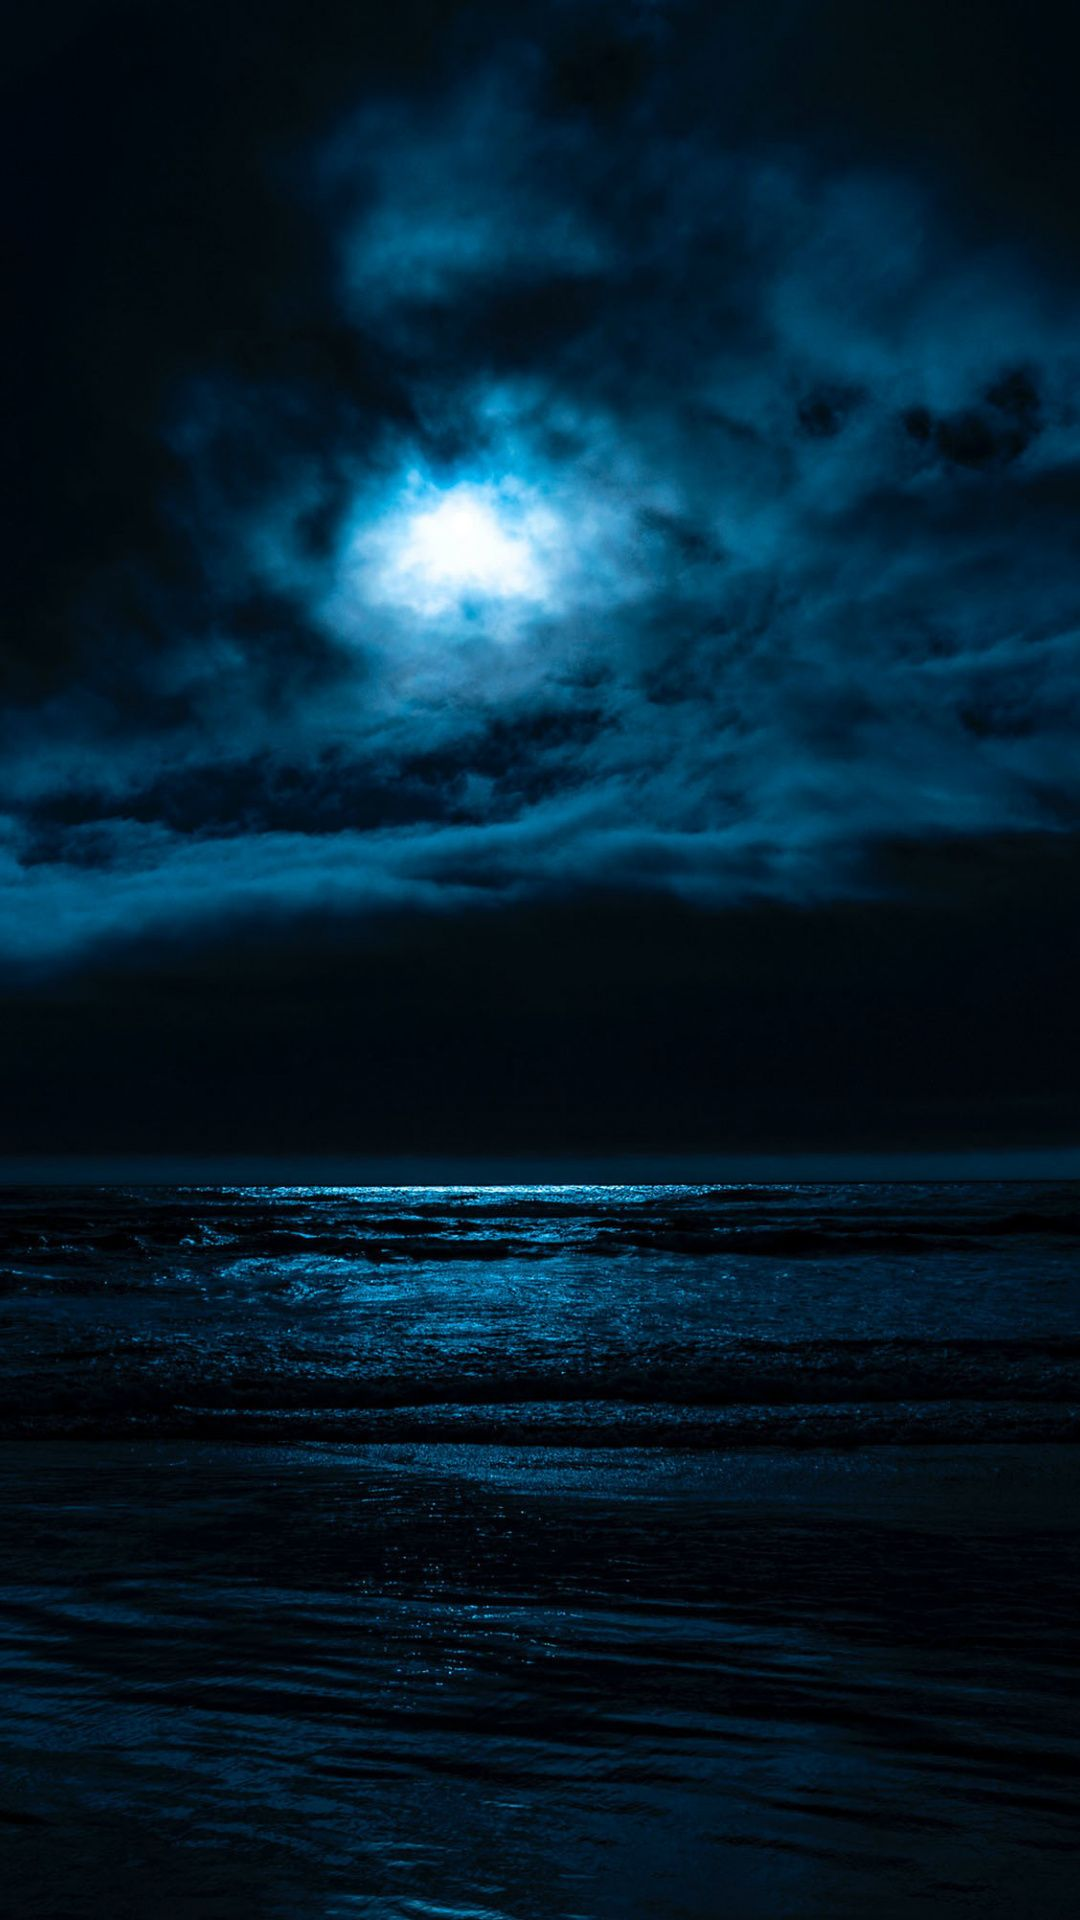 Clouds, moon light, night, sea, dark, 1080x1920 wallpaper